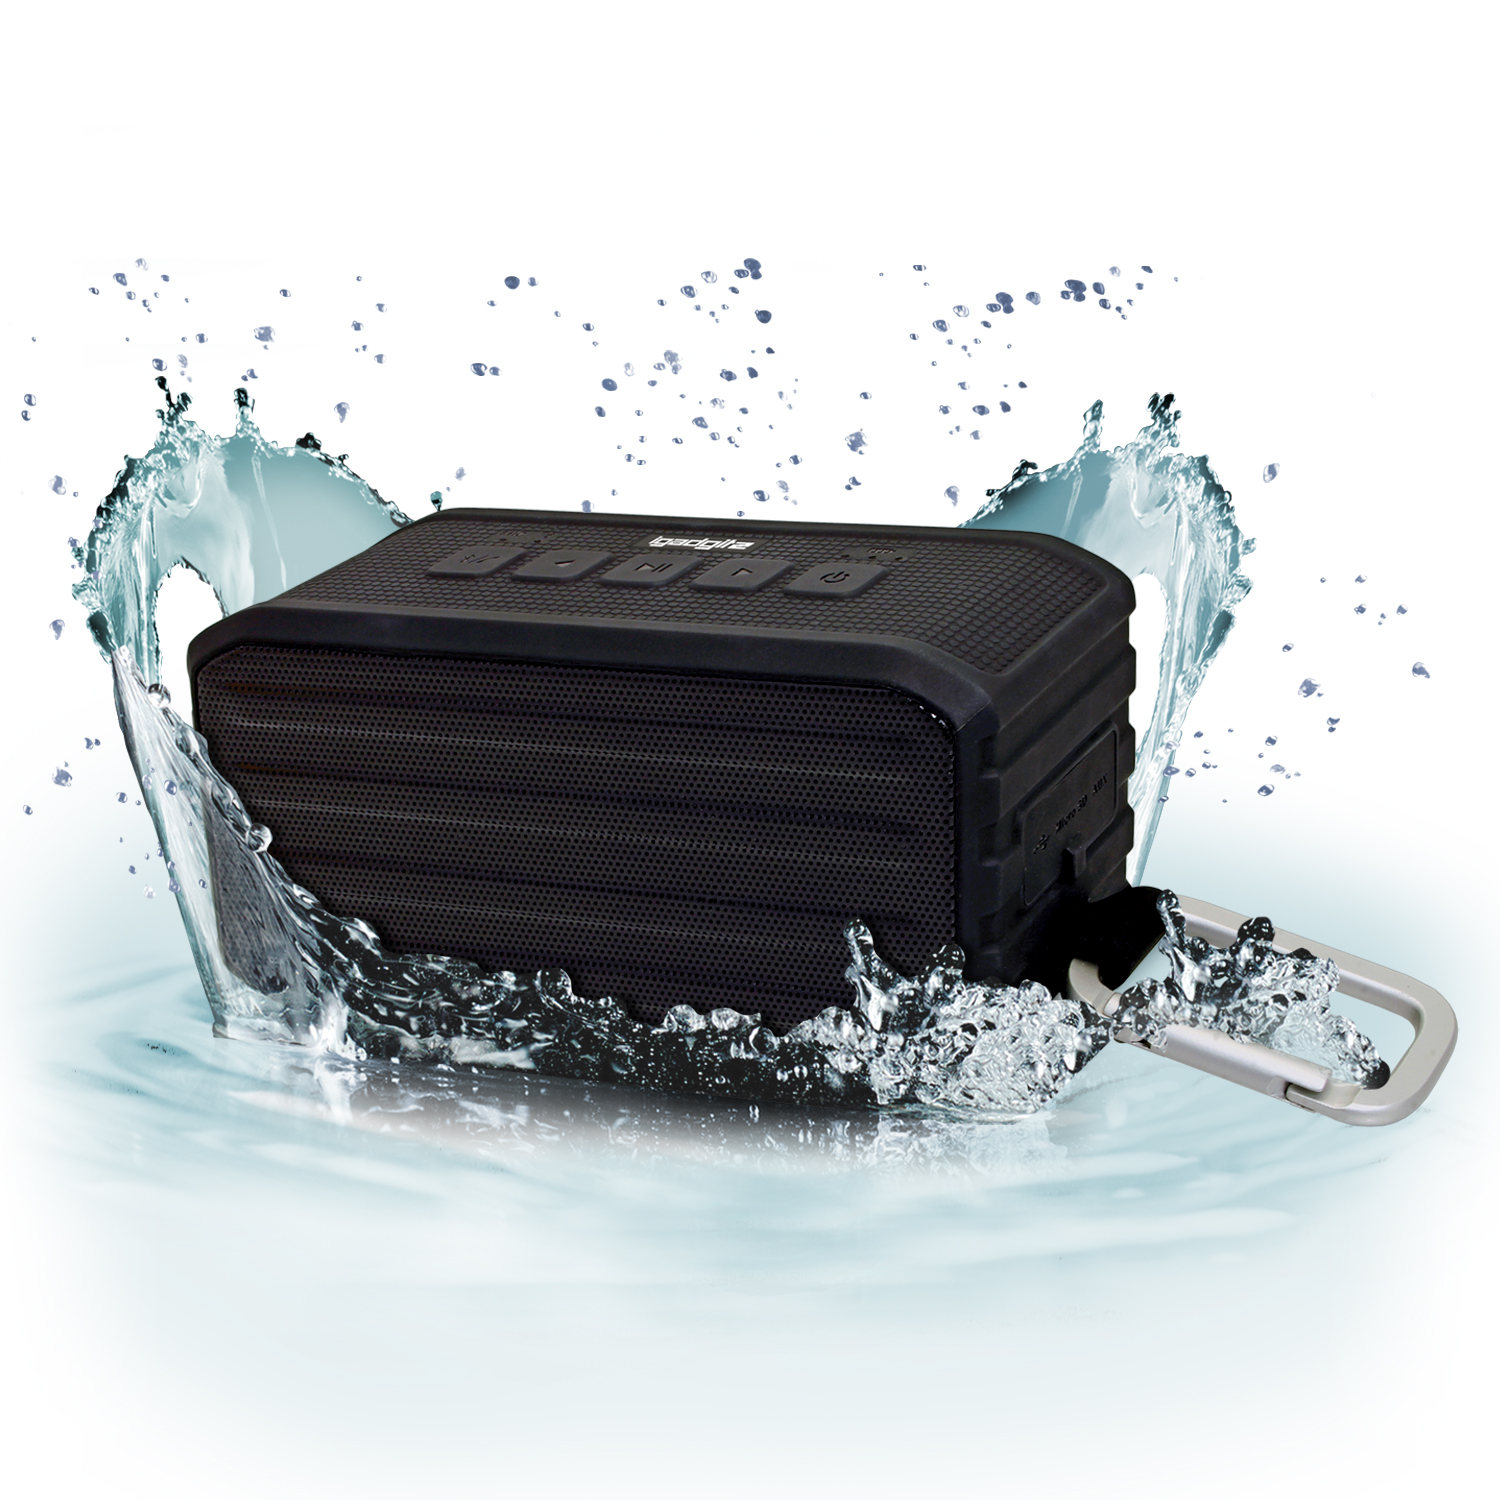 iGadgitz IGA-370 IPX4 7W Waterproof Portable Wireless Bluetooth 4.0 Travel Speaker with Carabineer Hanging Clip ? Black